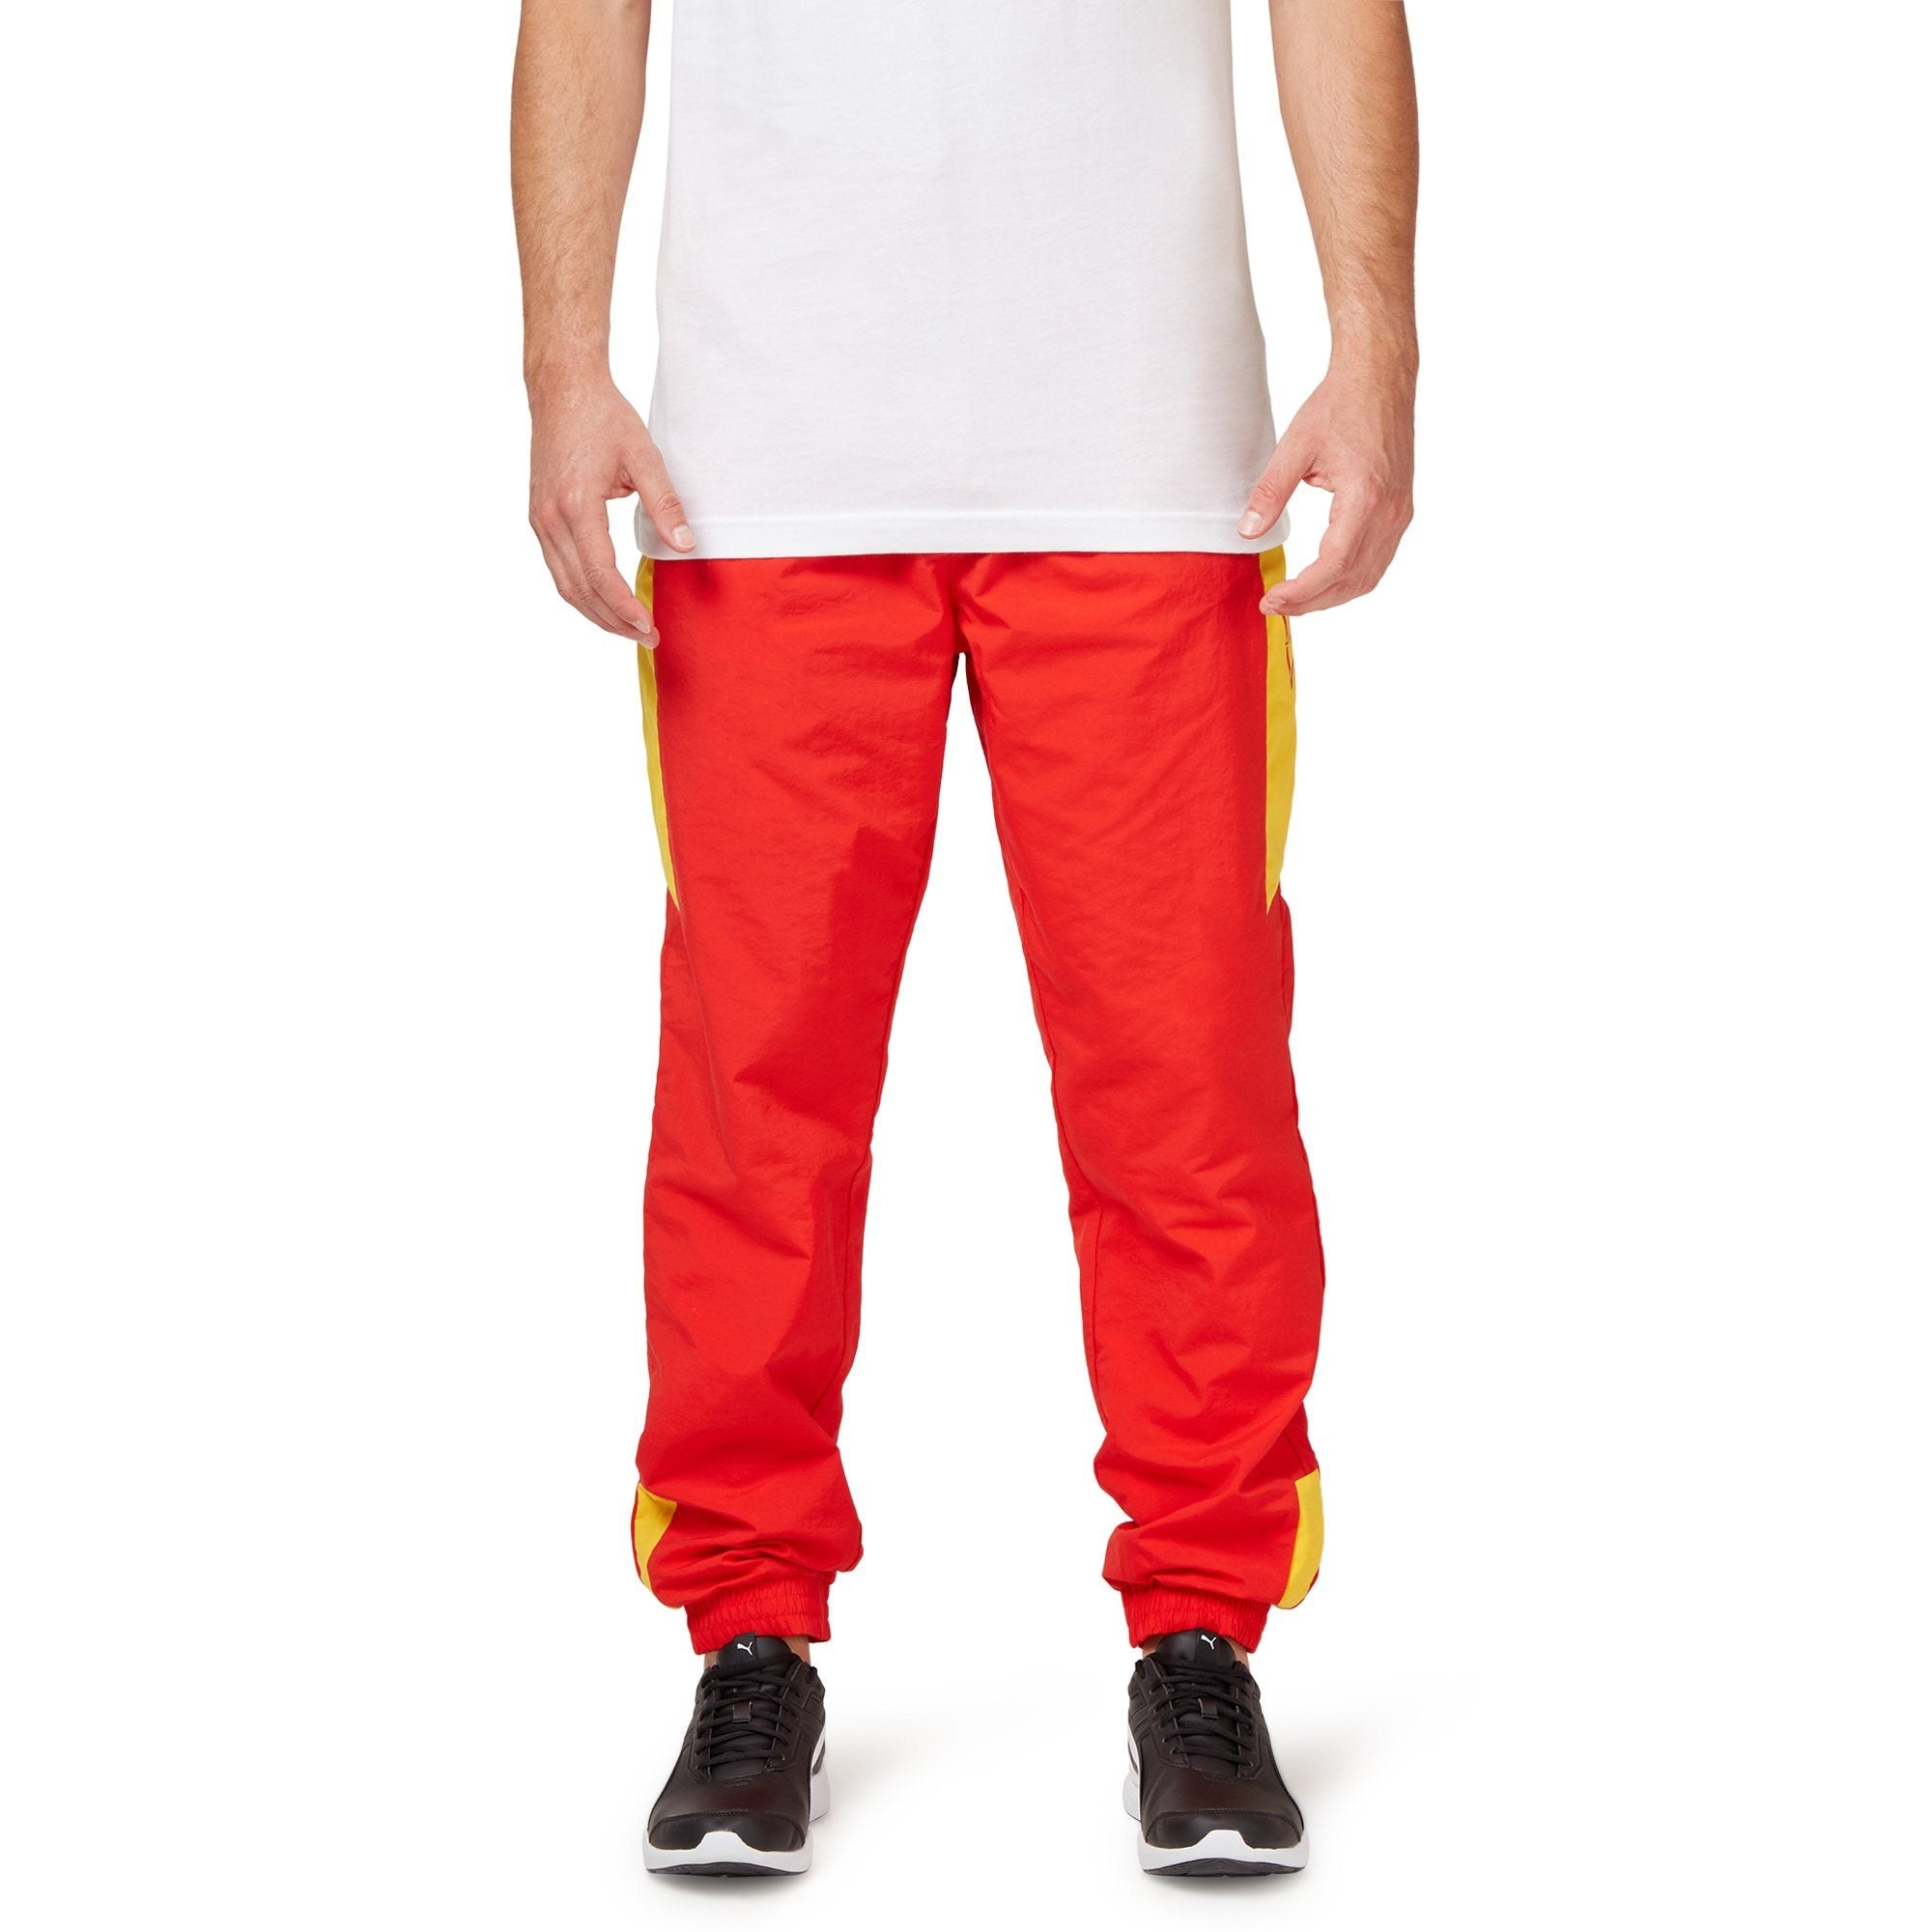 Puma Men's Homage to Archive Trackpants - Red Apparel Puma  (2122605559867)